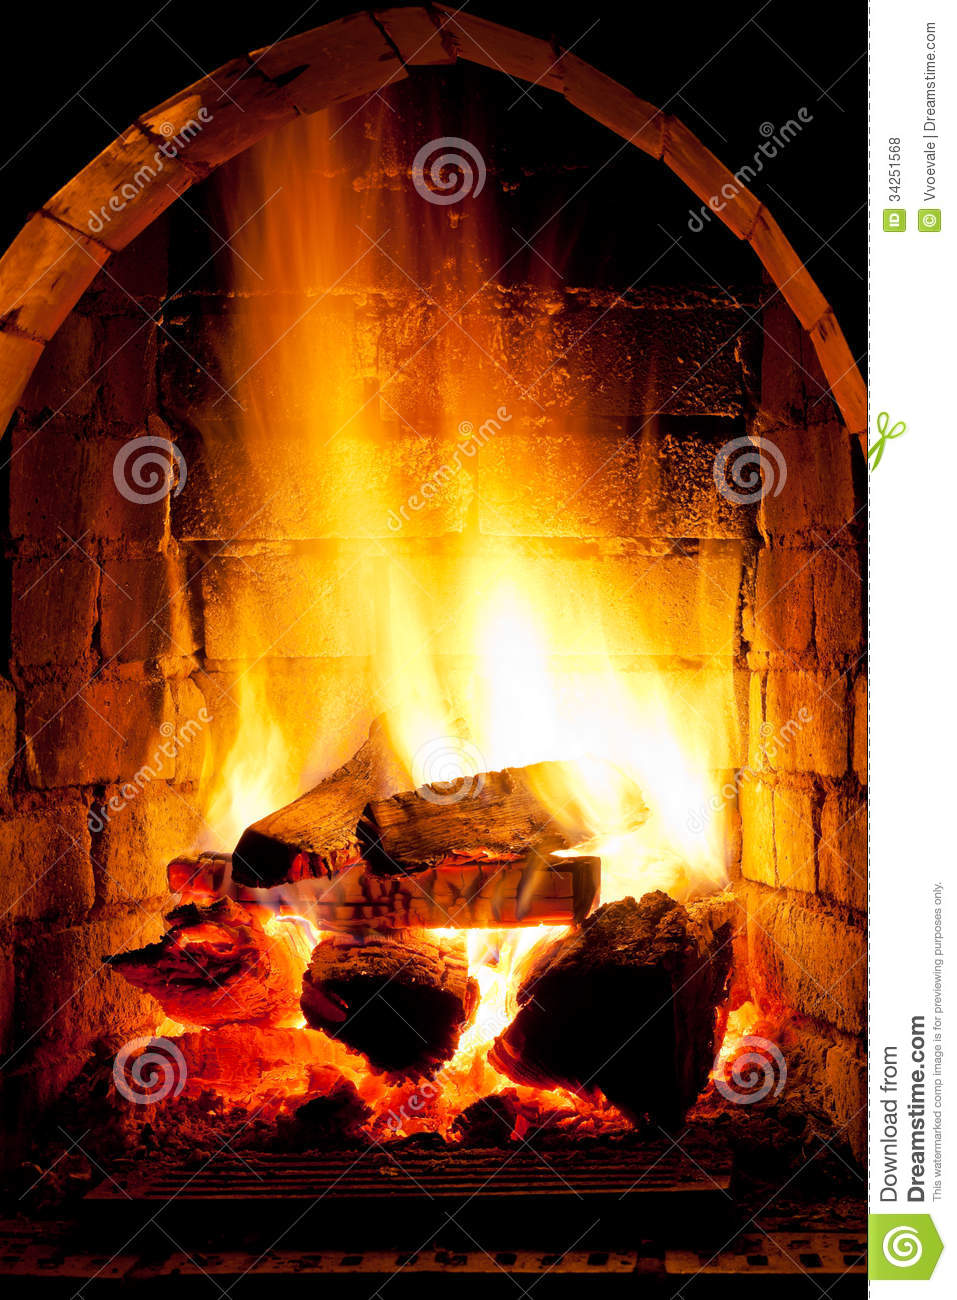 fire in fireplace royalty free stock photos image 34251568